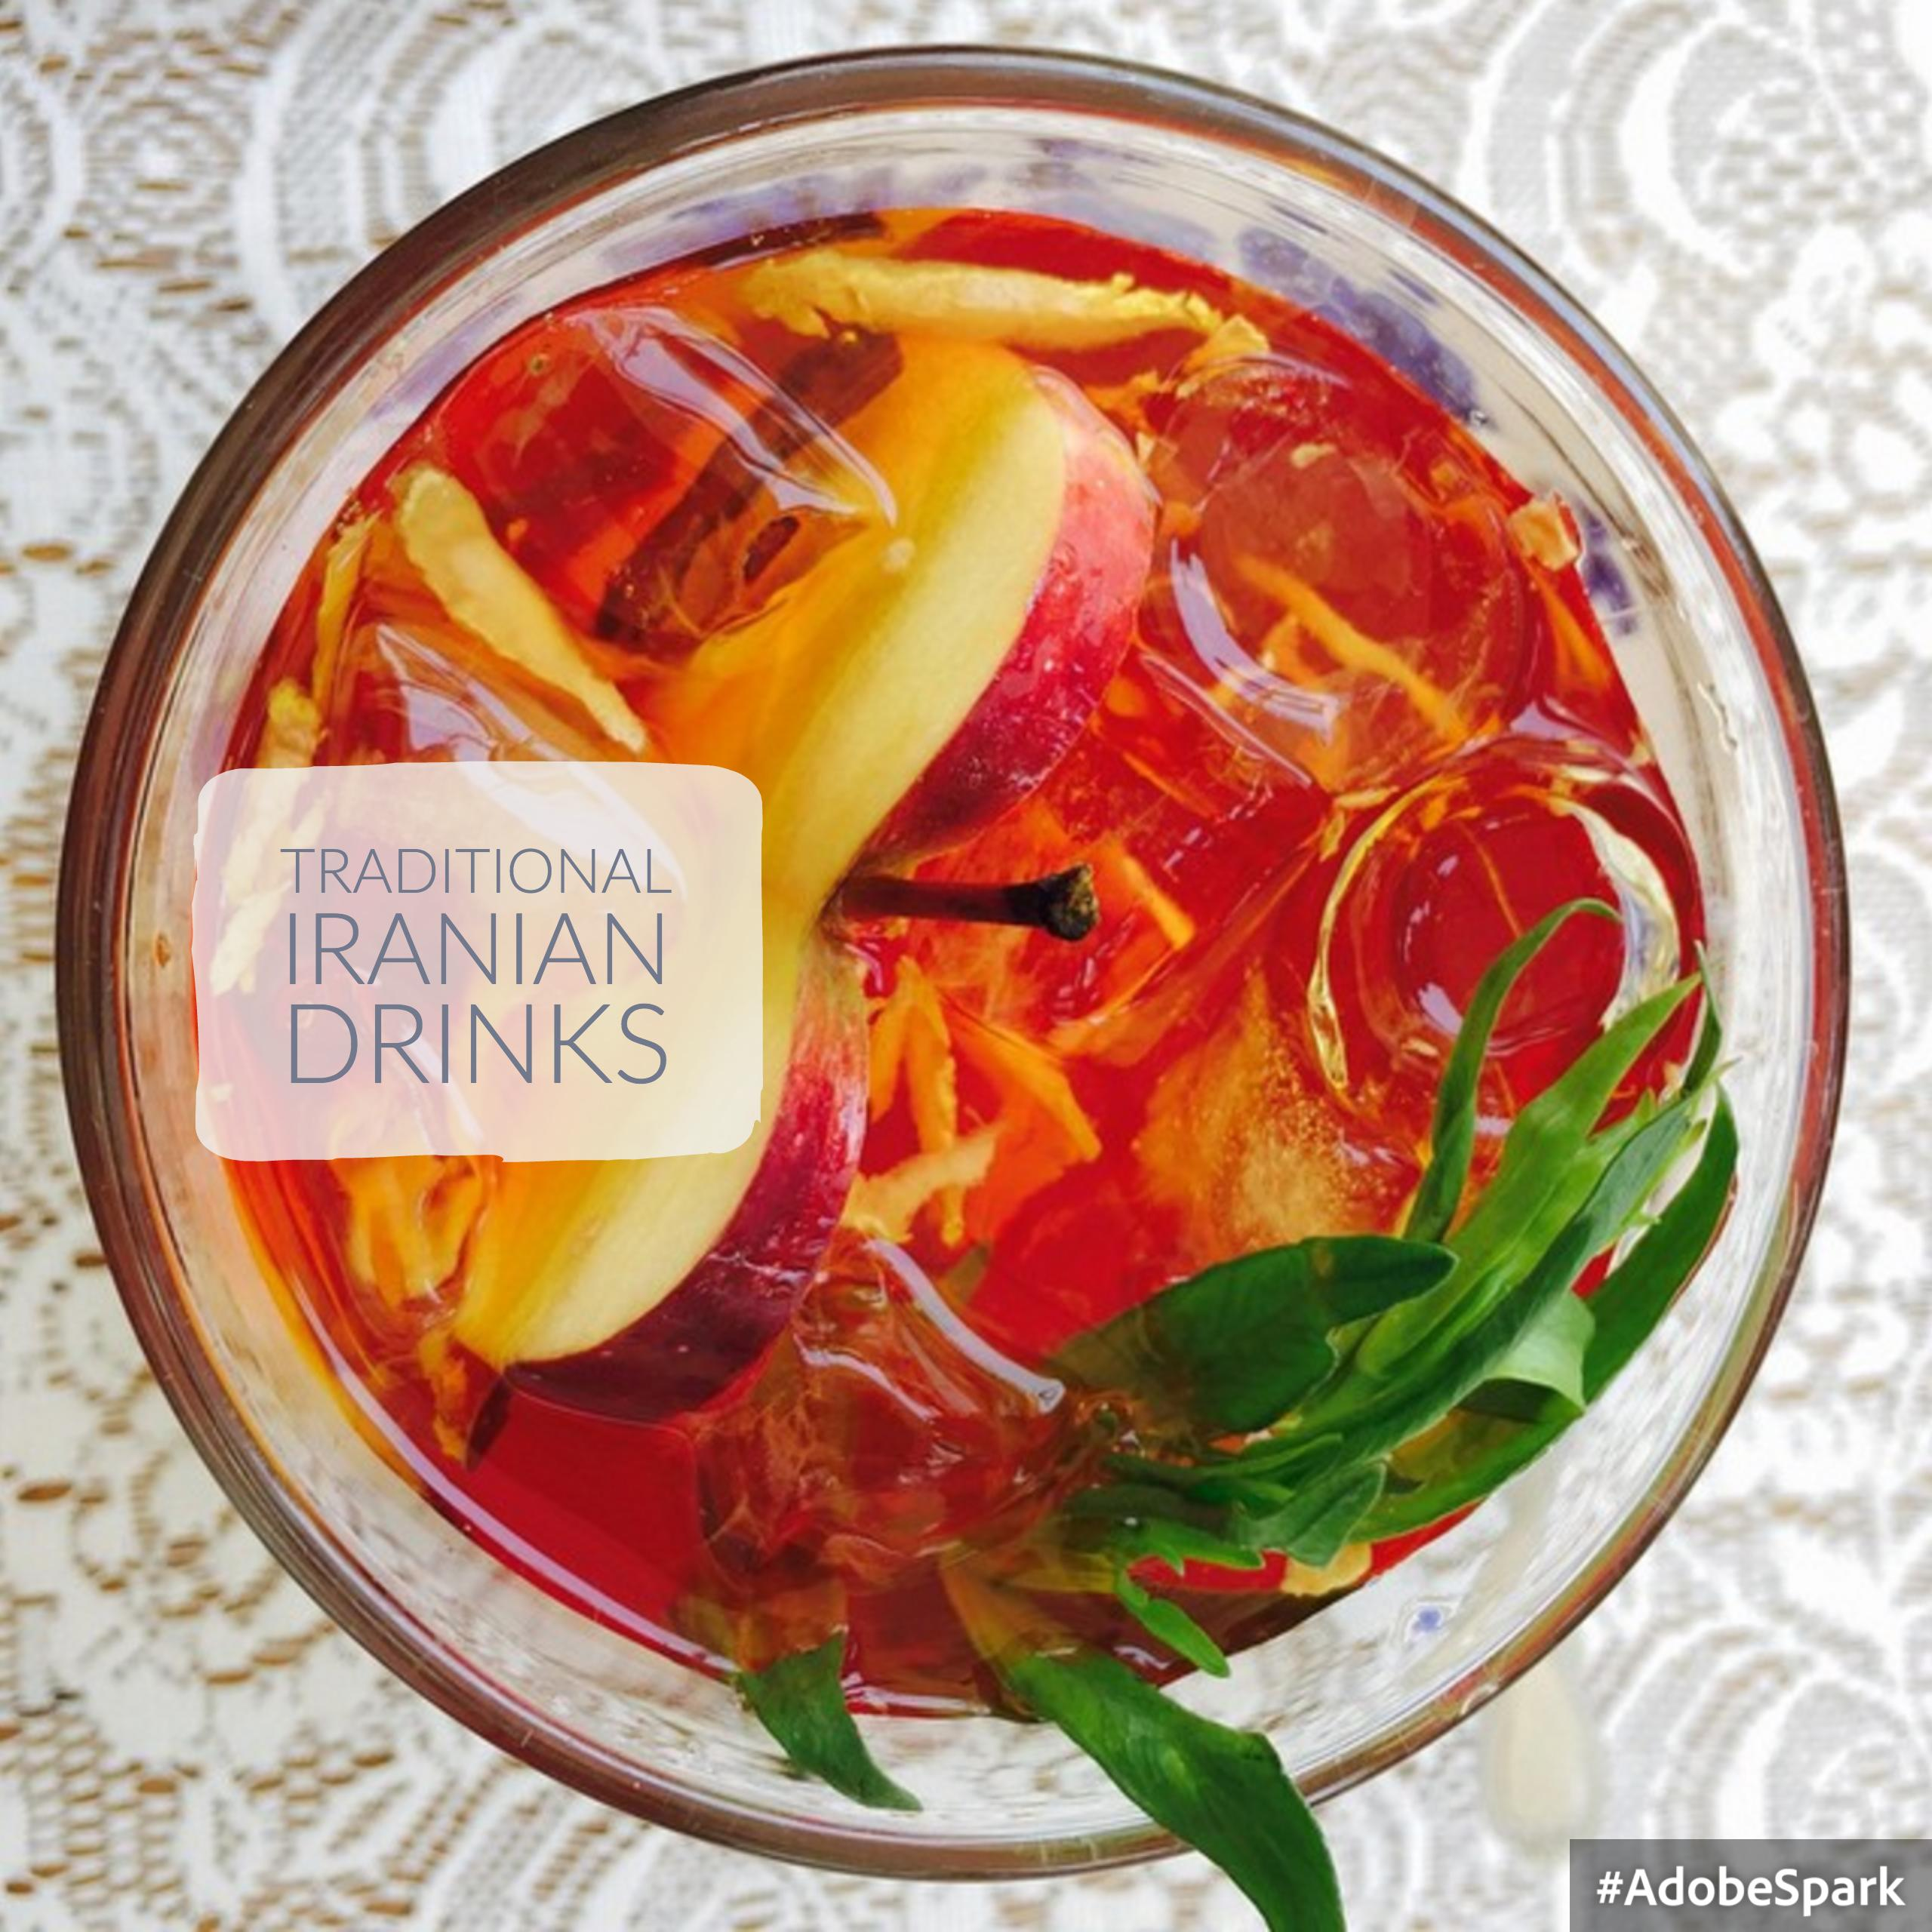 Kashhan and Iranian Traditional Drinks